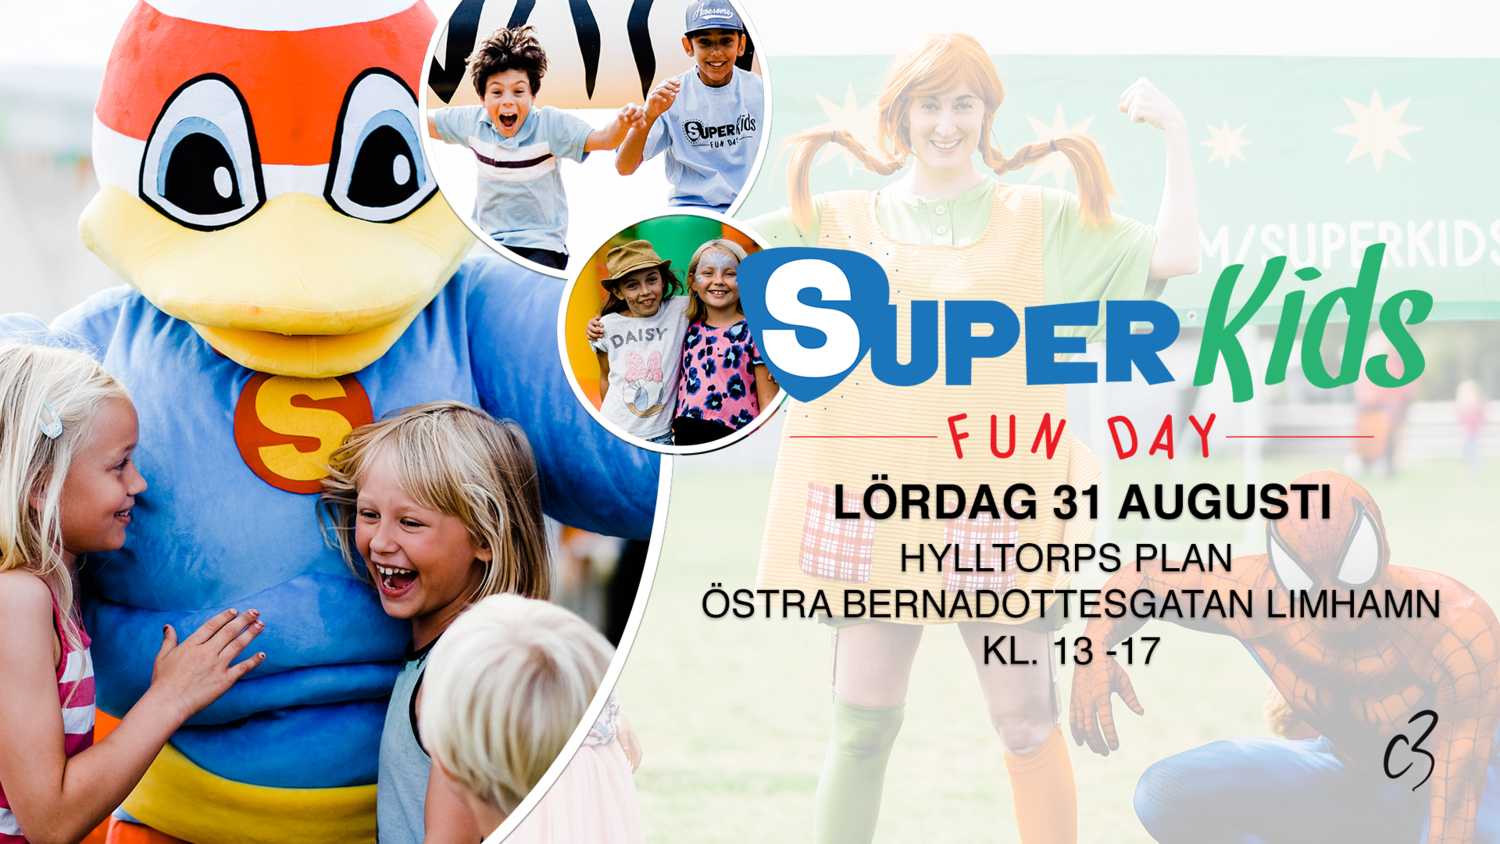 Super+Kids+Funday+2019+promo+slide.png